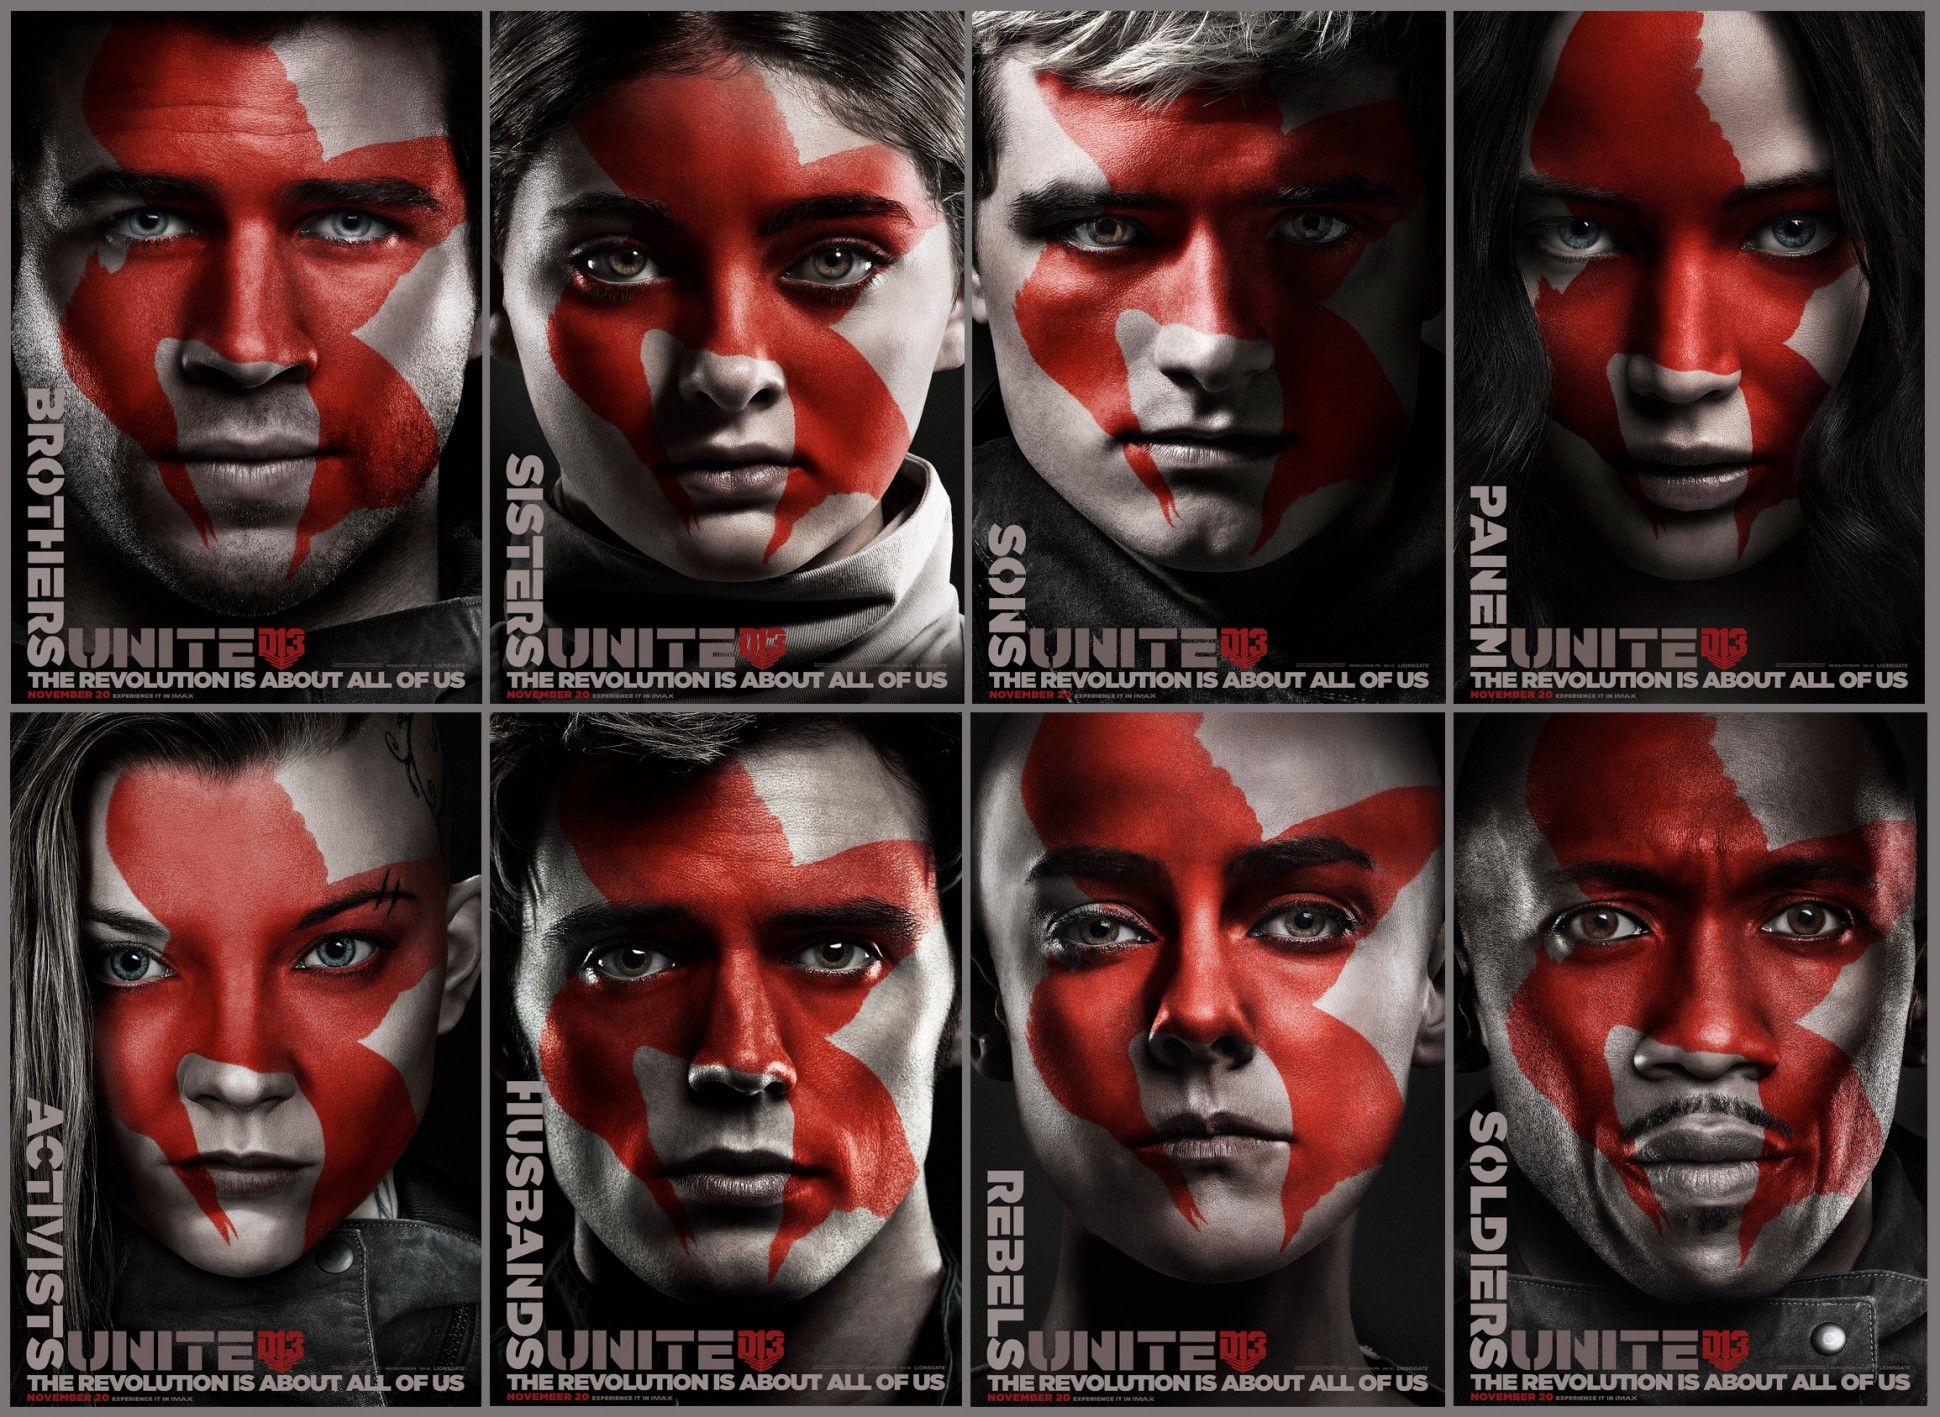 Posters Hunger Games Mockingjay Part 2 Faces Of The Revolution Hunger Games Wallpaper Hunger Games Mockingjay Hunger Games